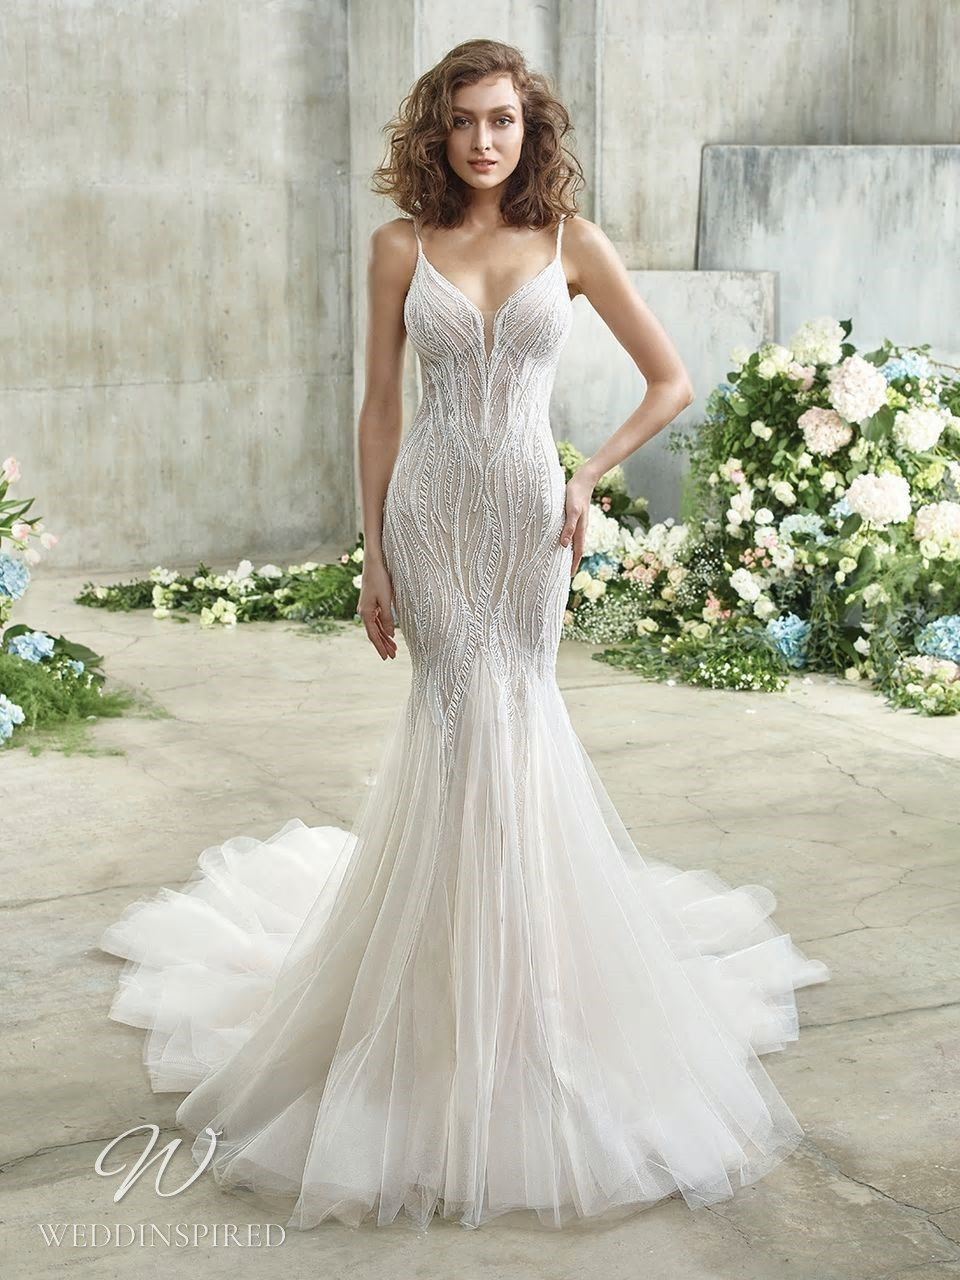 A Badgley Mischka gauzy mermaid wedding dress with a tulle skirt, beading and spaghetti straps